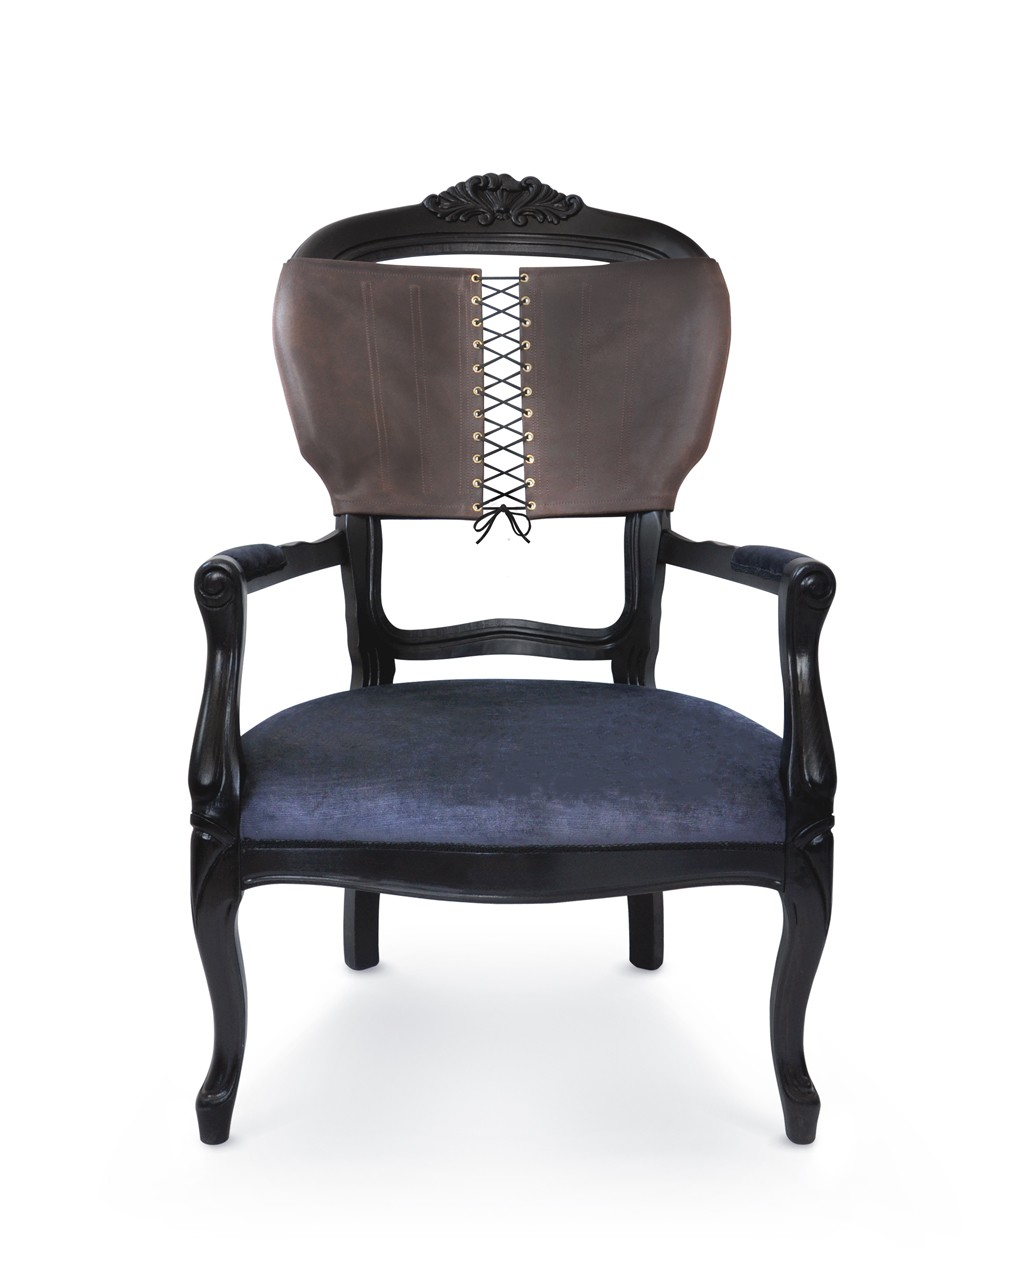 Corset Chair Brown leather Charcoal velvet seat - Corset Chair